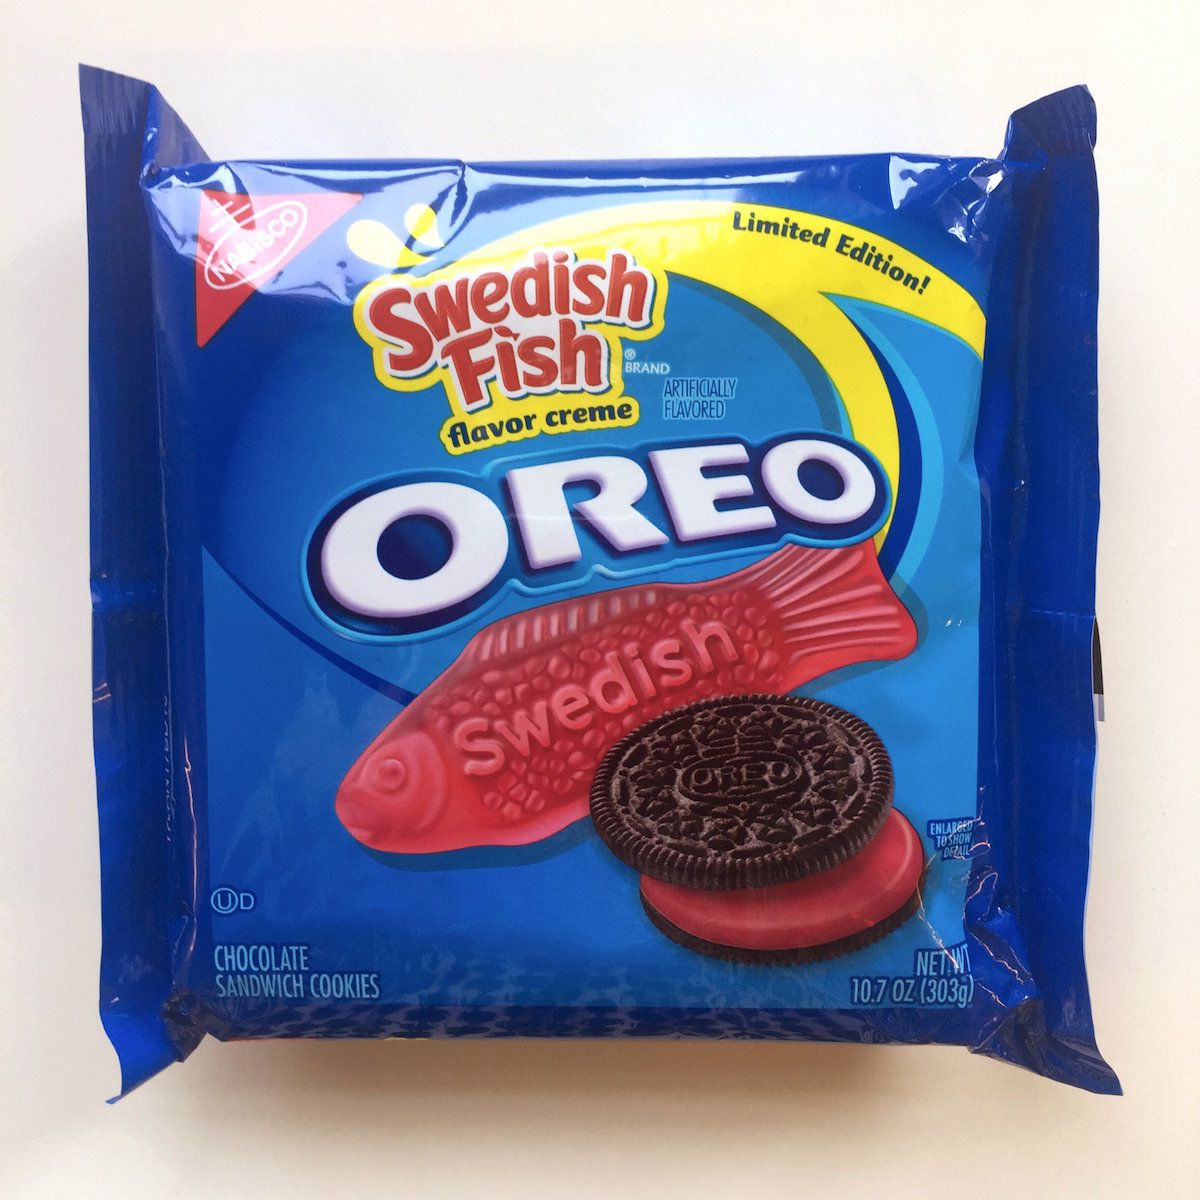 Limited edition swedish fish oreos selling for big money for Swedish fish oreos where to buy